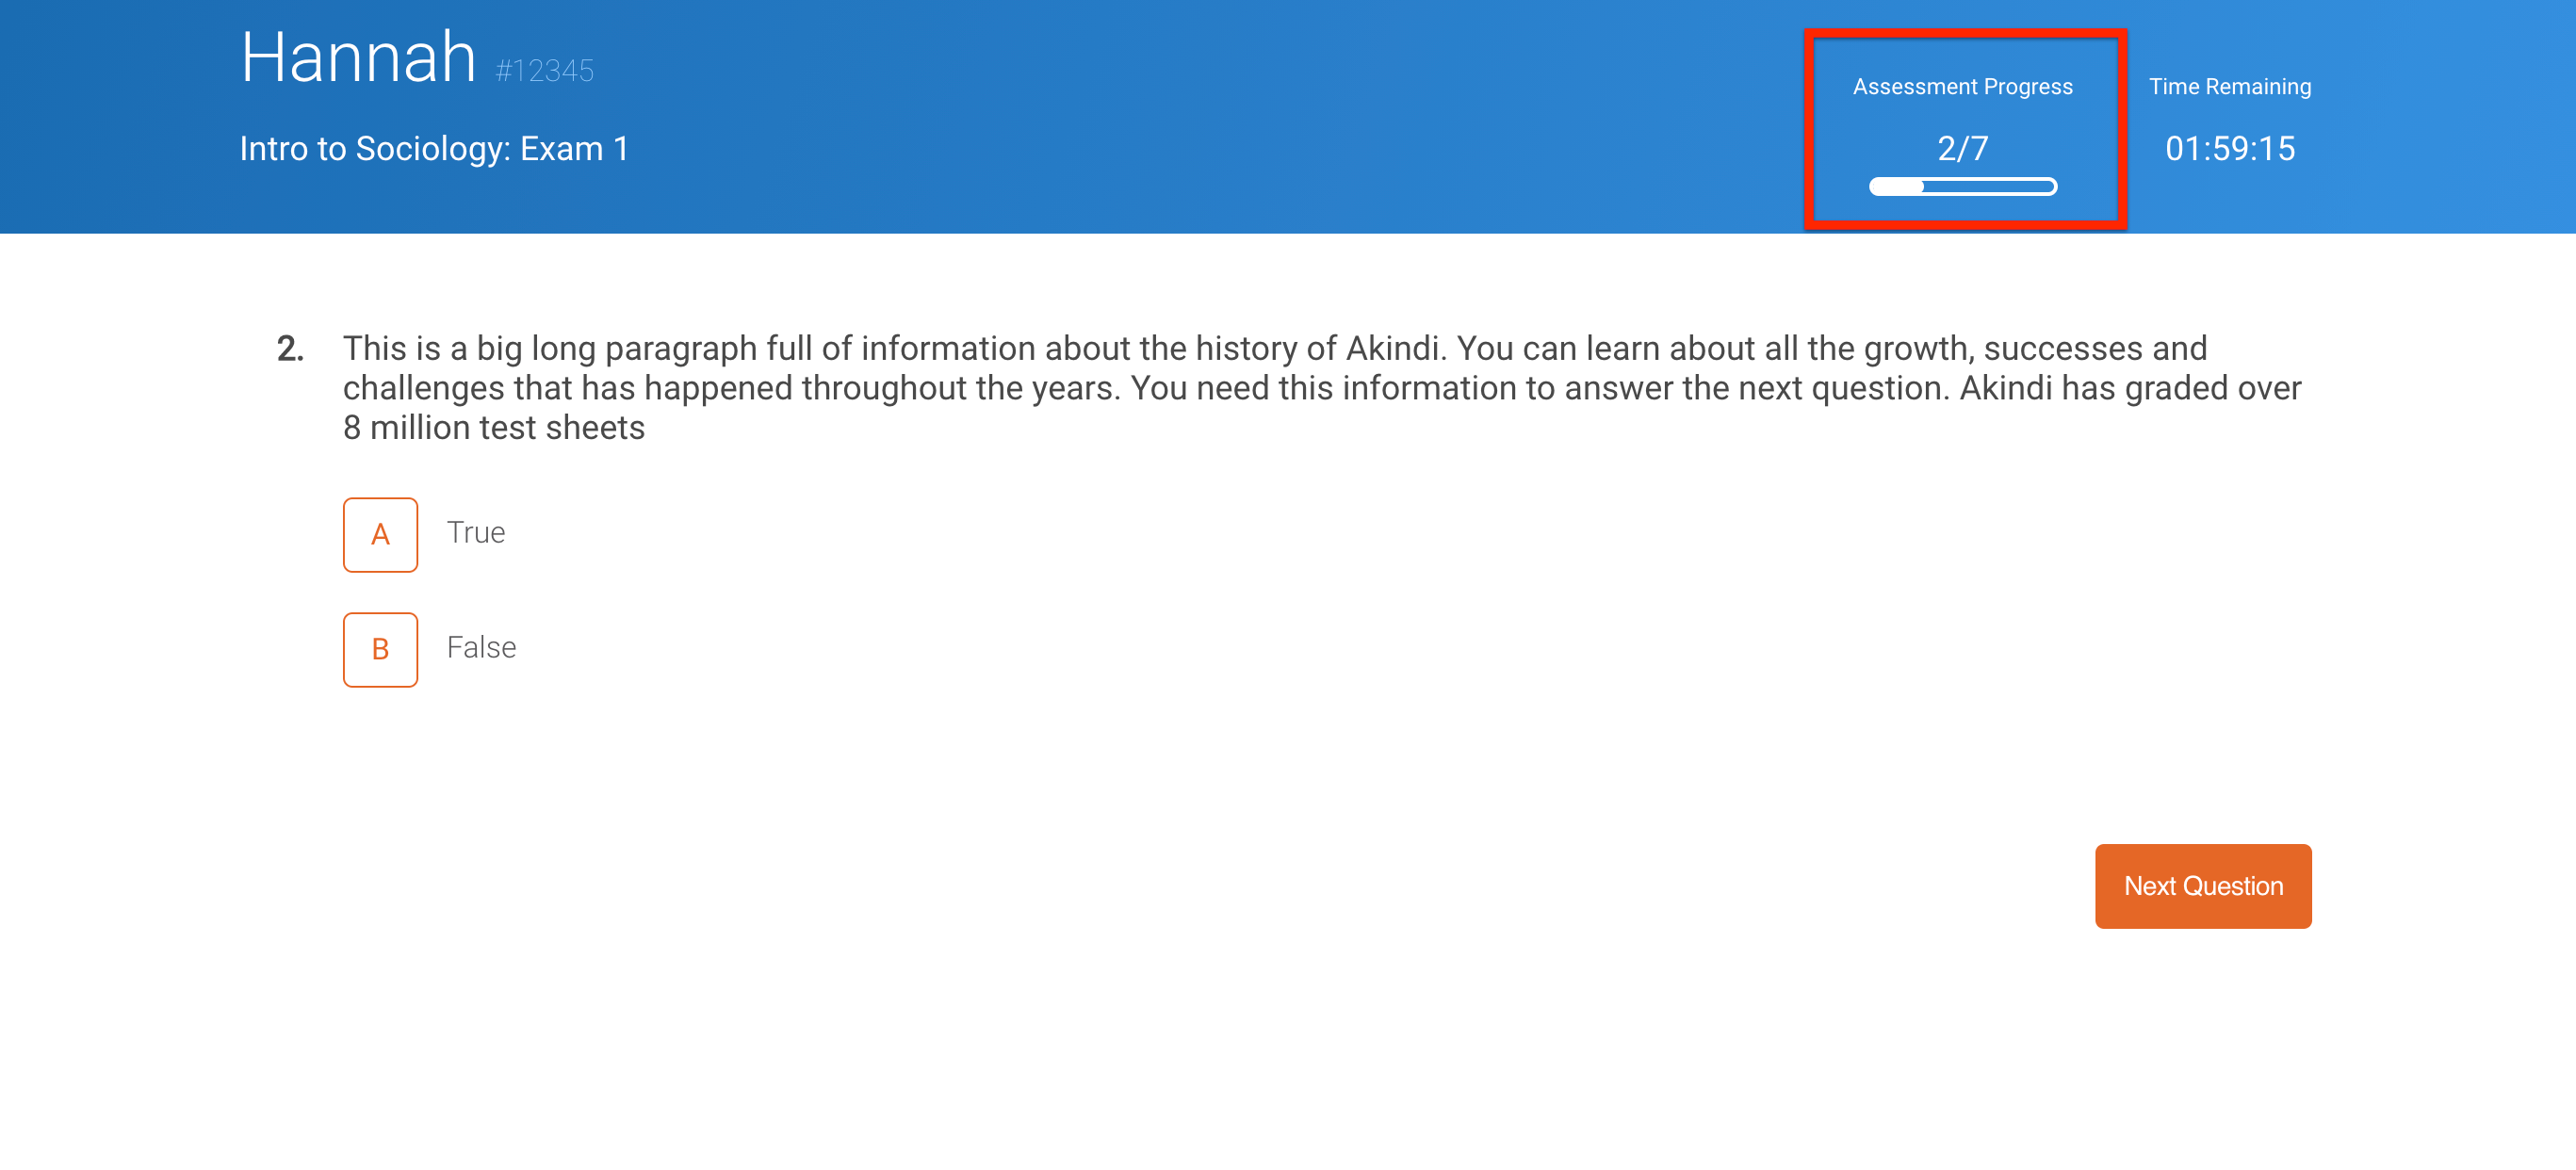 Image: Display one question at a time, backtracking prevented. Assessment progress highlighted.